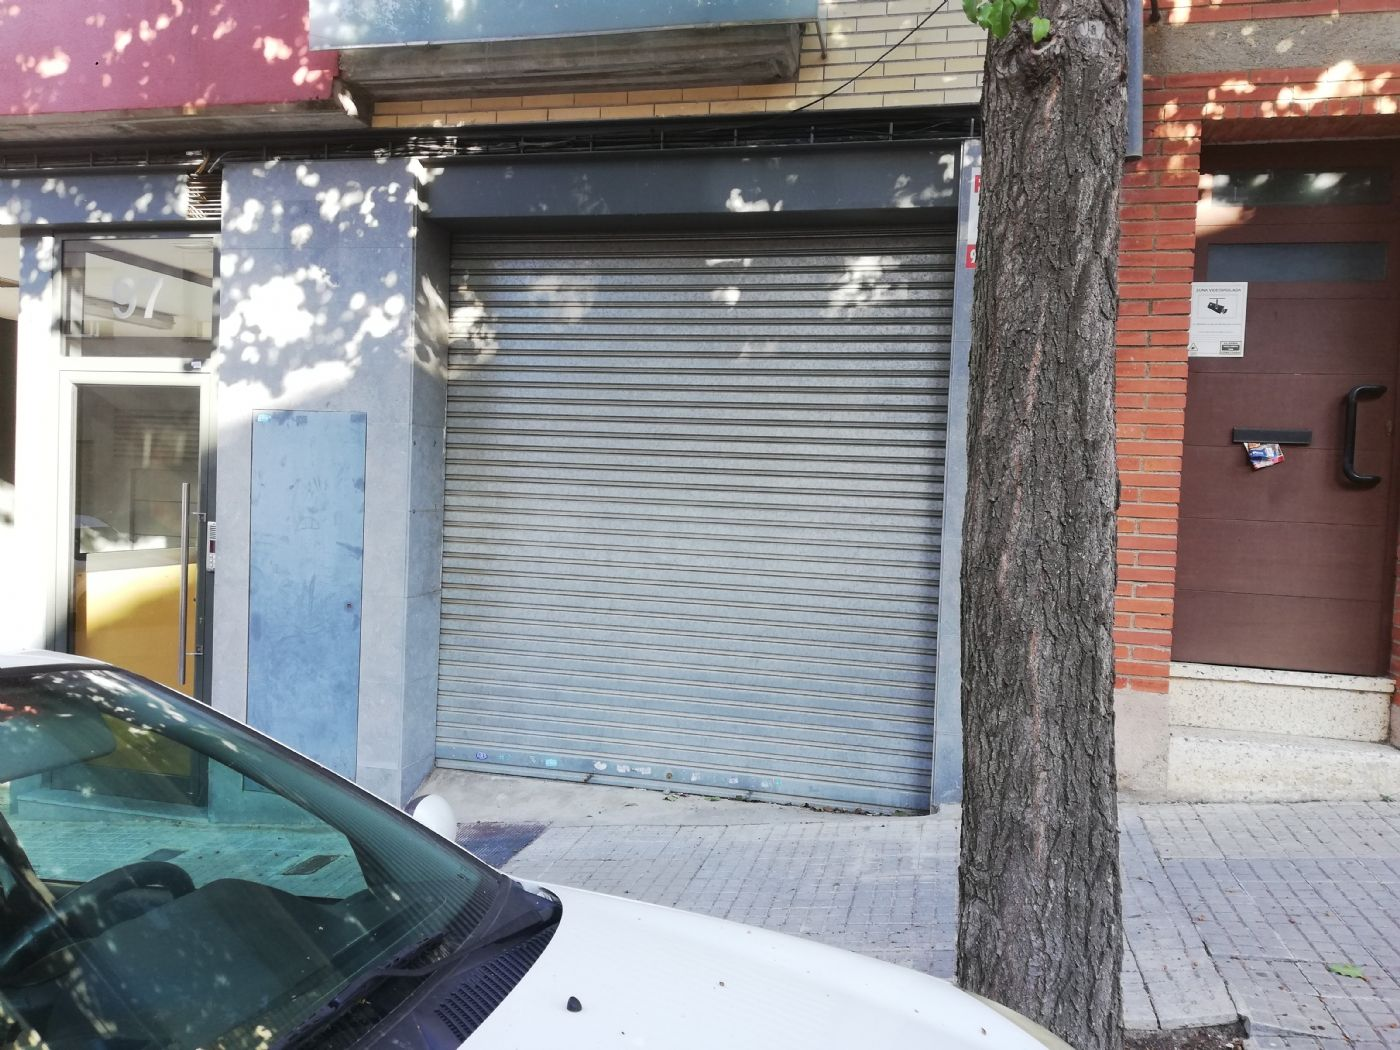 Car parking in Carrer edison, 97. Garaje privado con persiana